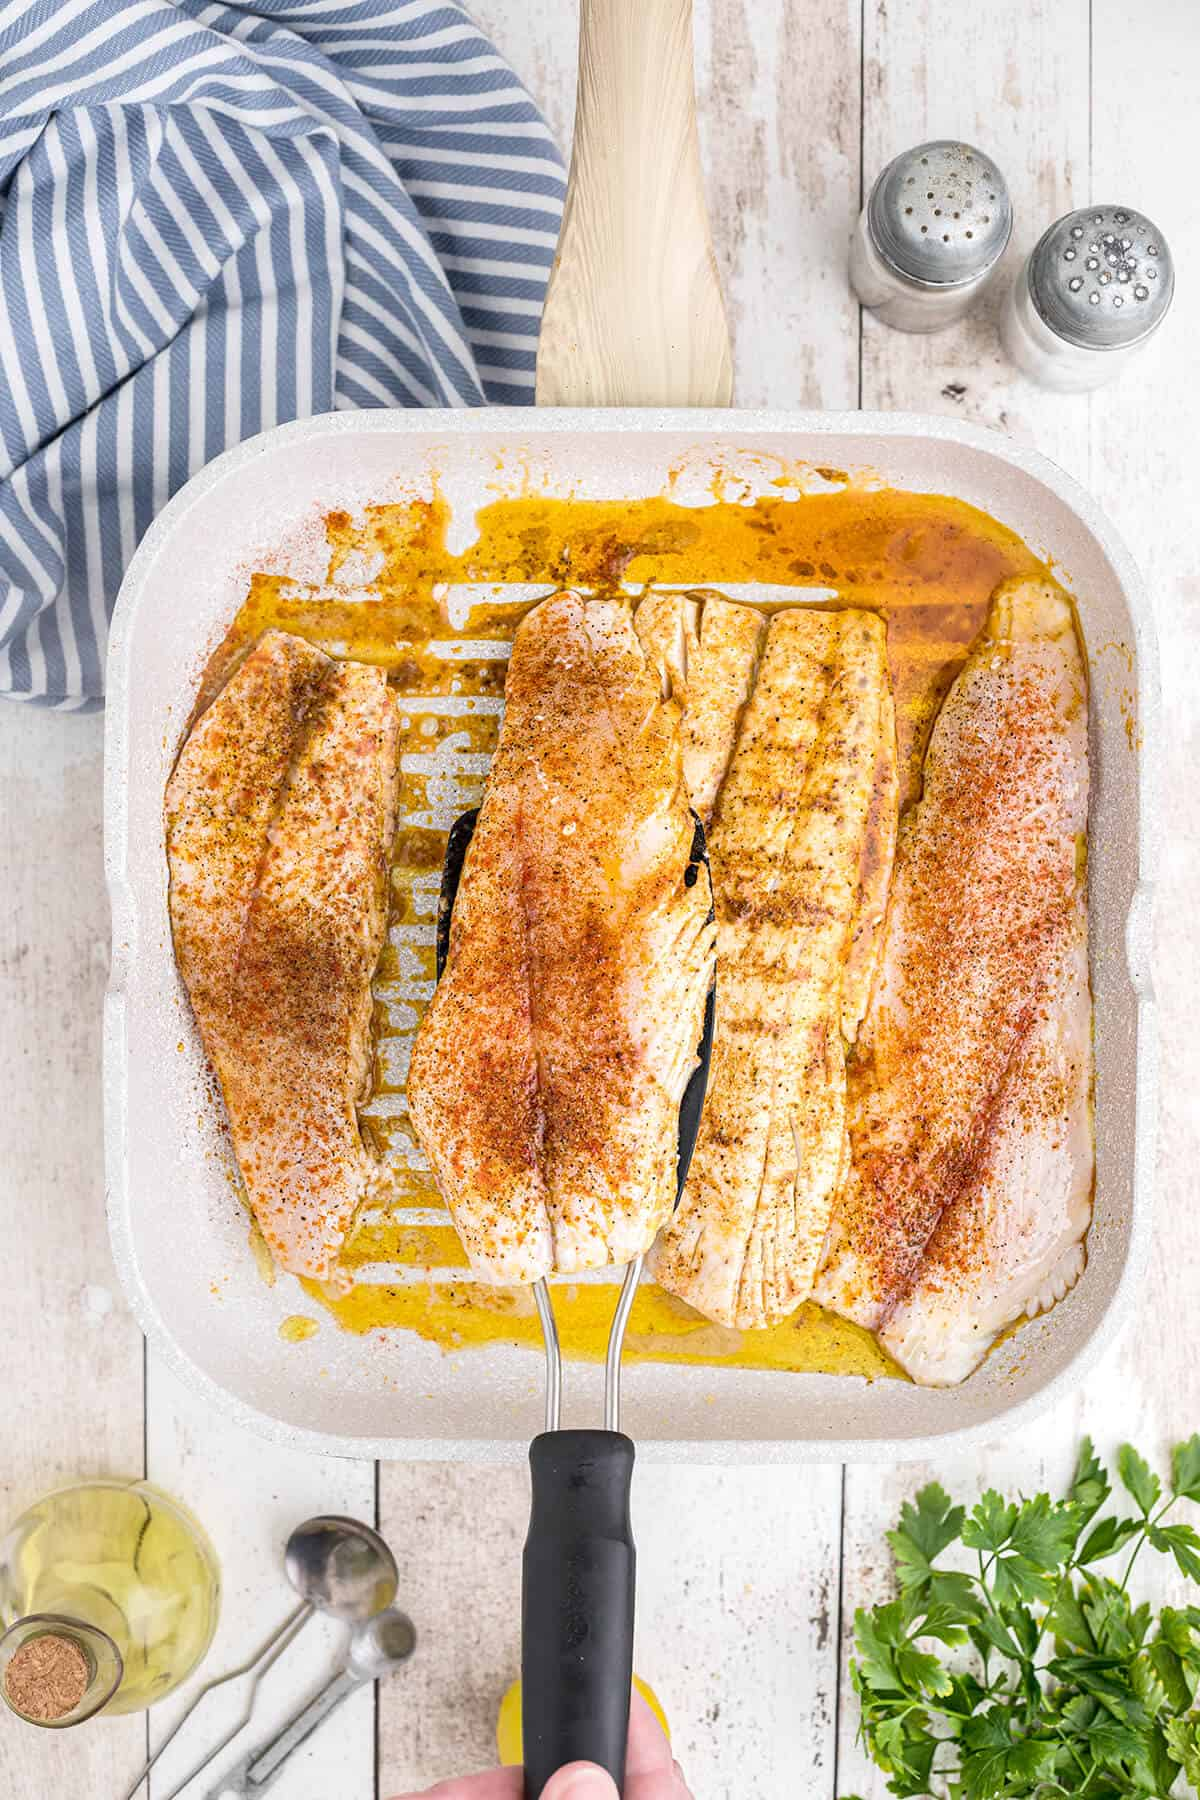 Fish fillets cooking in a grill pan.